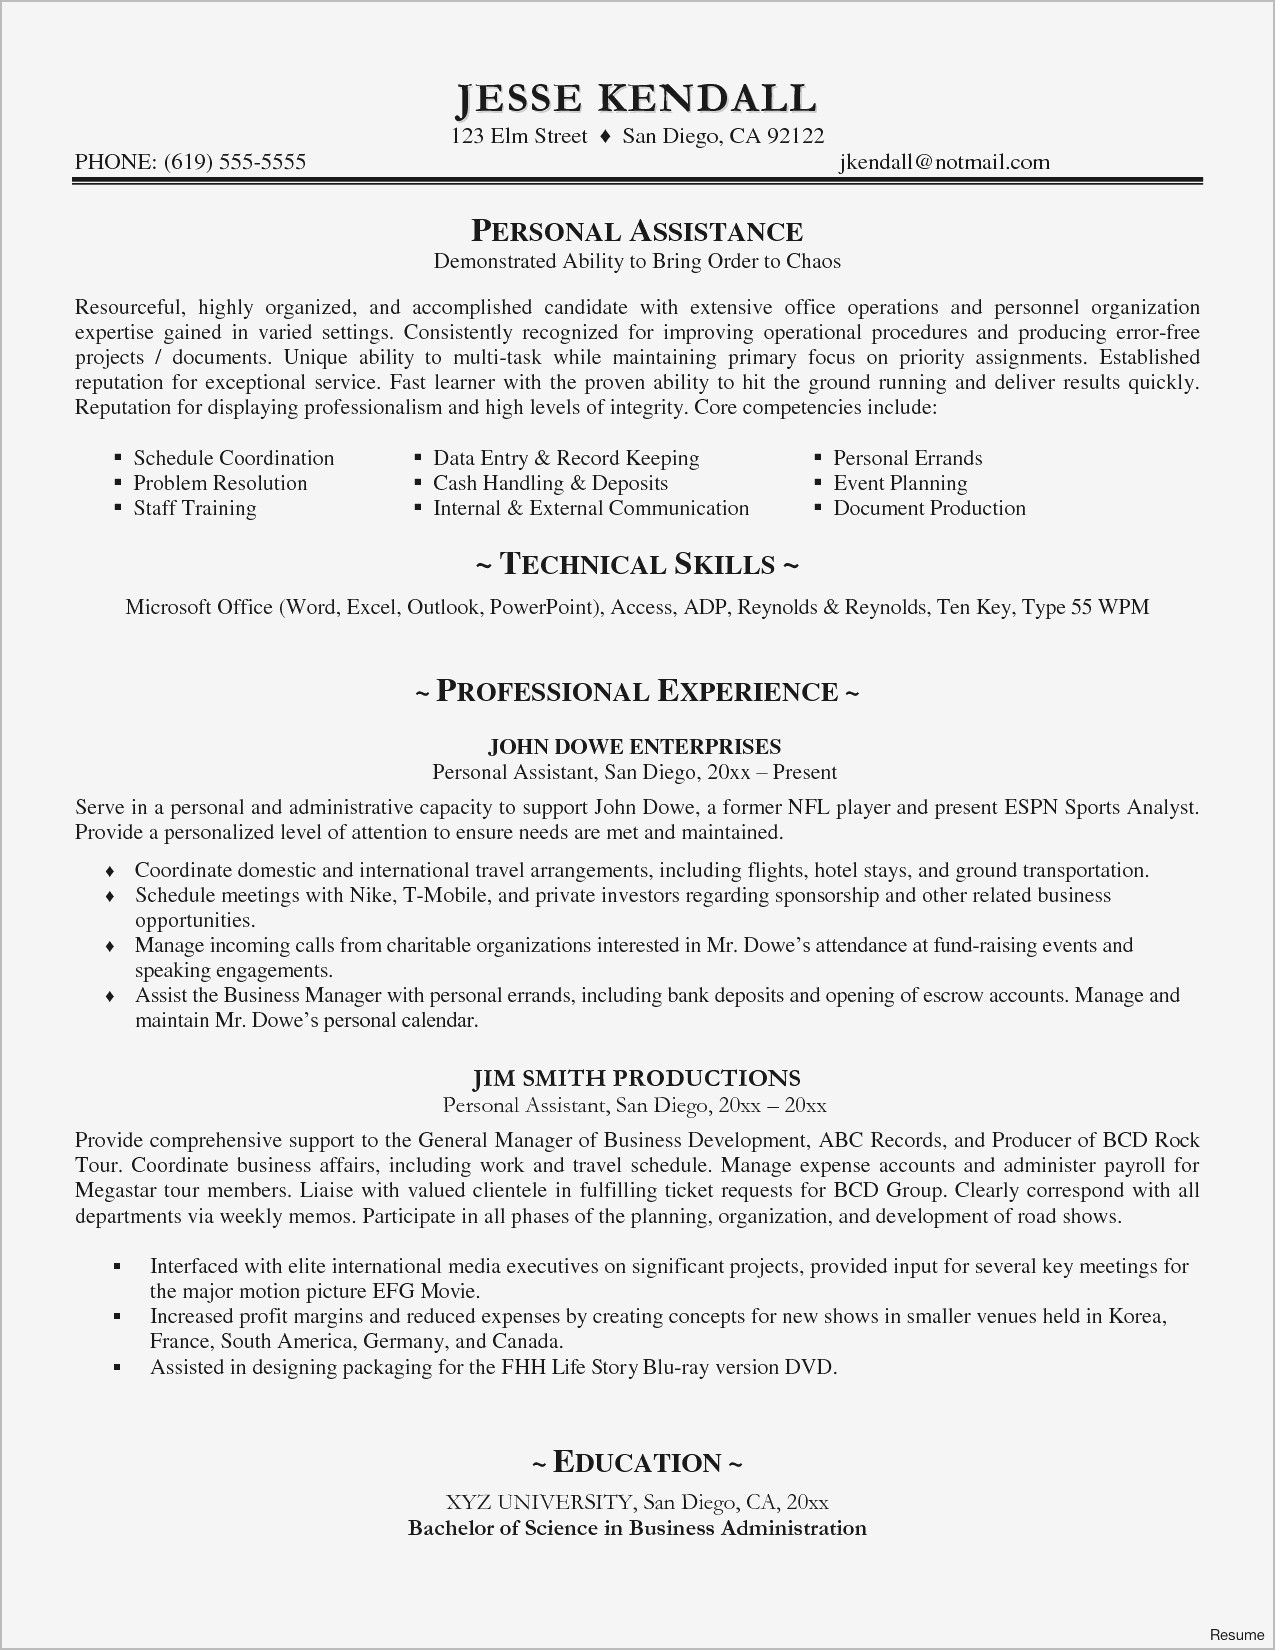 Resume Common App - Mon App Resume Lovely Help with Resumes Unique Best Reception